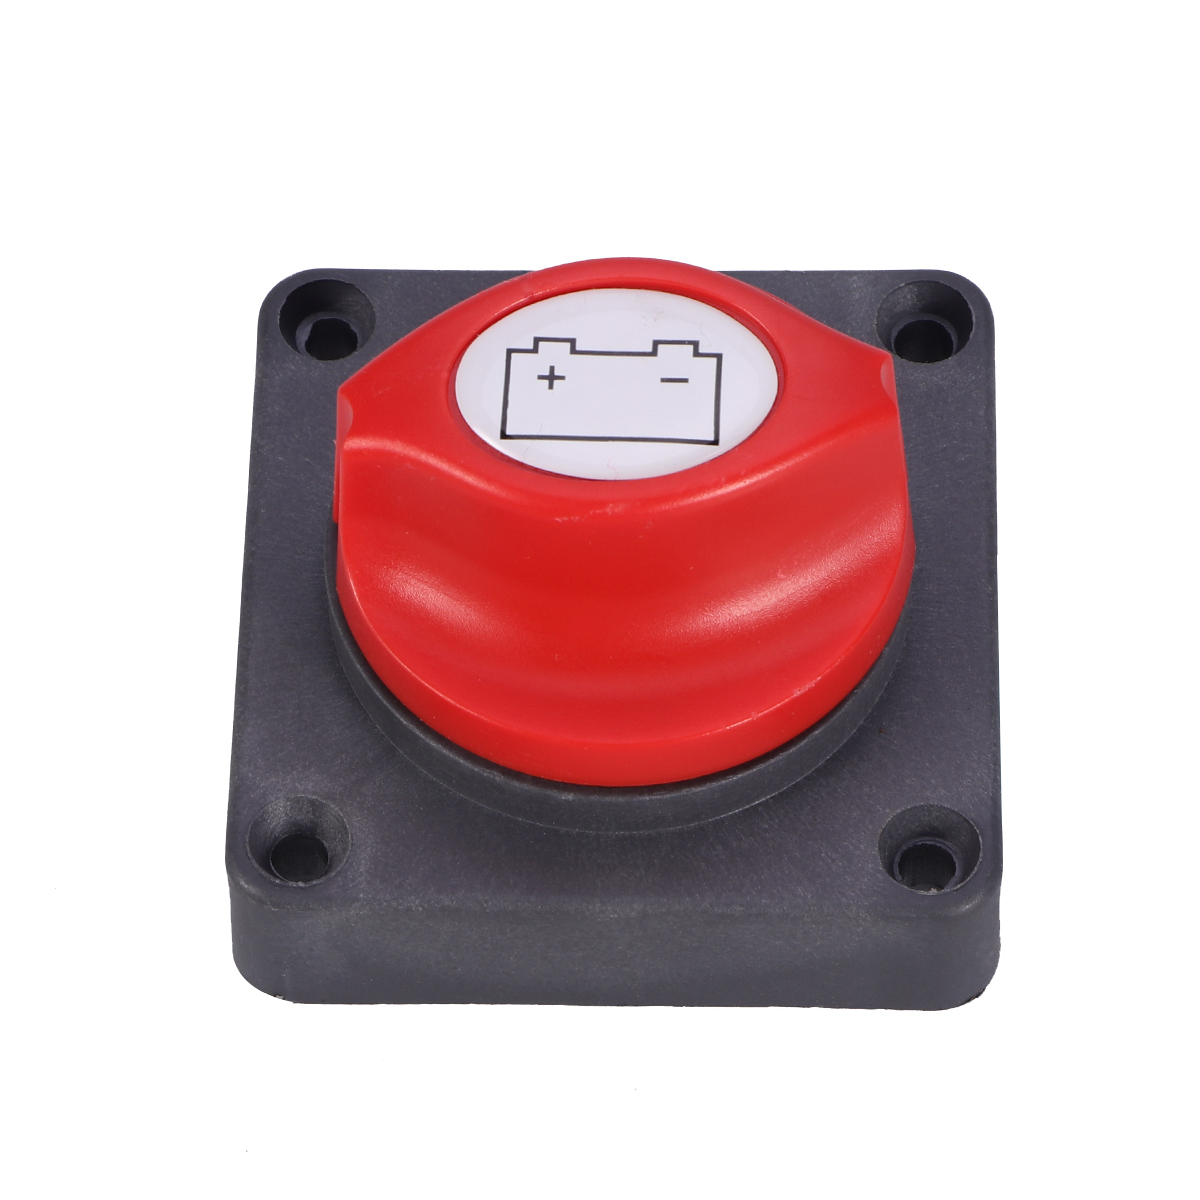 Battery Isolator Disconnect Cut Off Power Master Kill Switch For Marine Car Boat